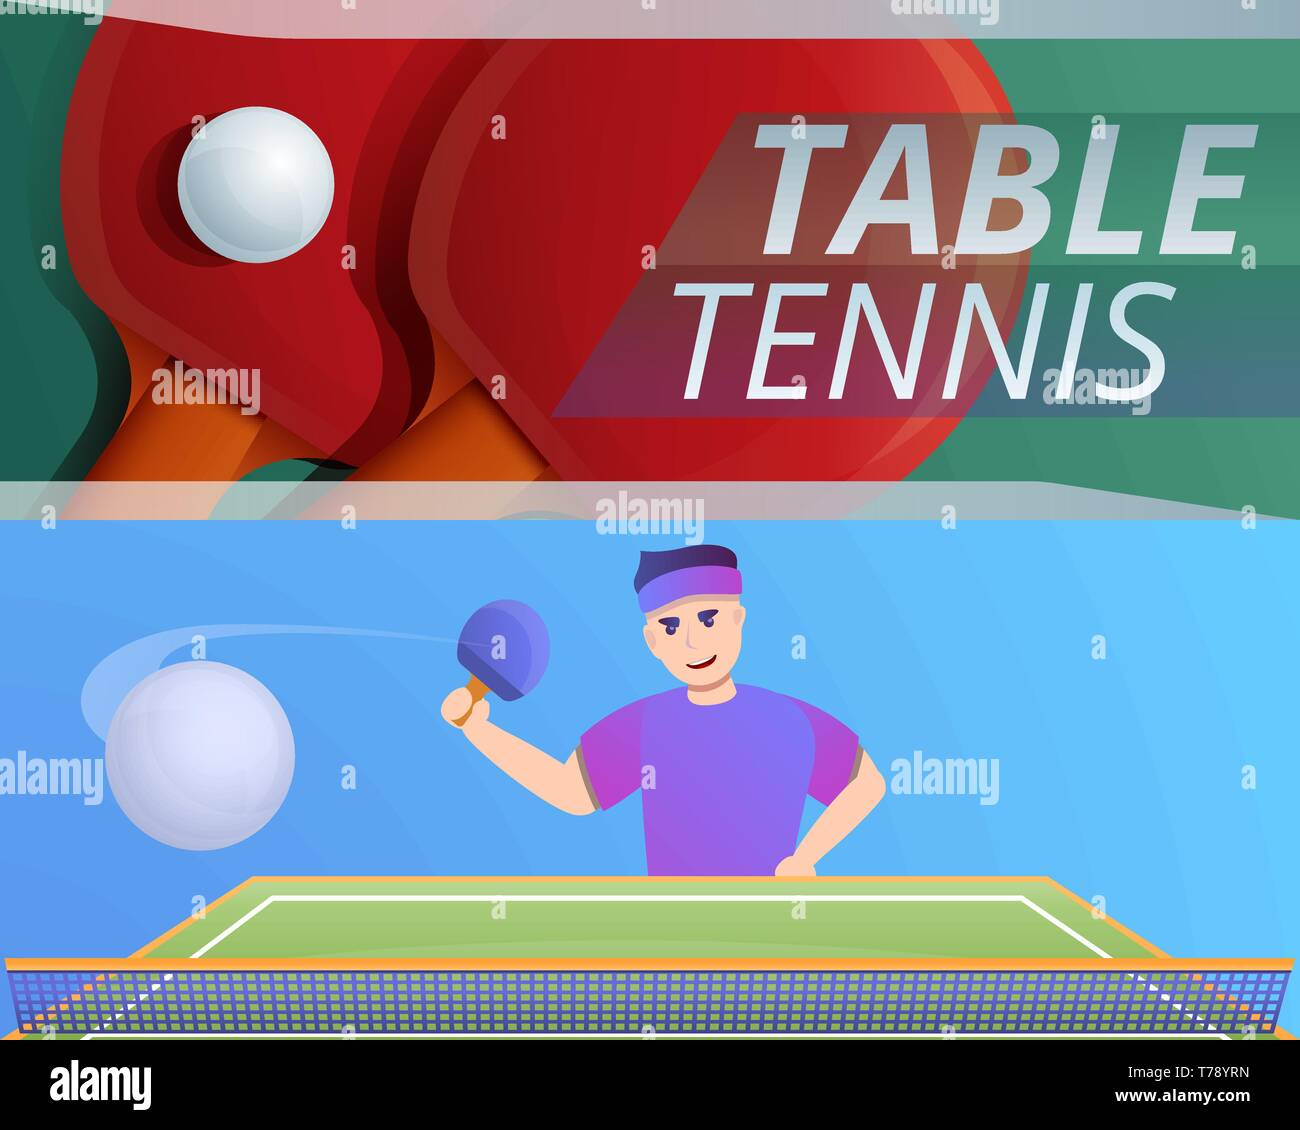 Tennis de table jeu de bannières. Cartoon vector illustration de tennis de table pour mettre la bannière web design Illustration de Vecteur